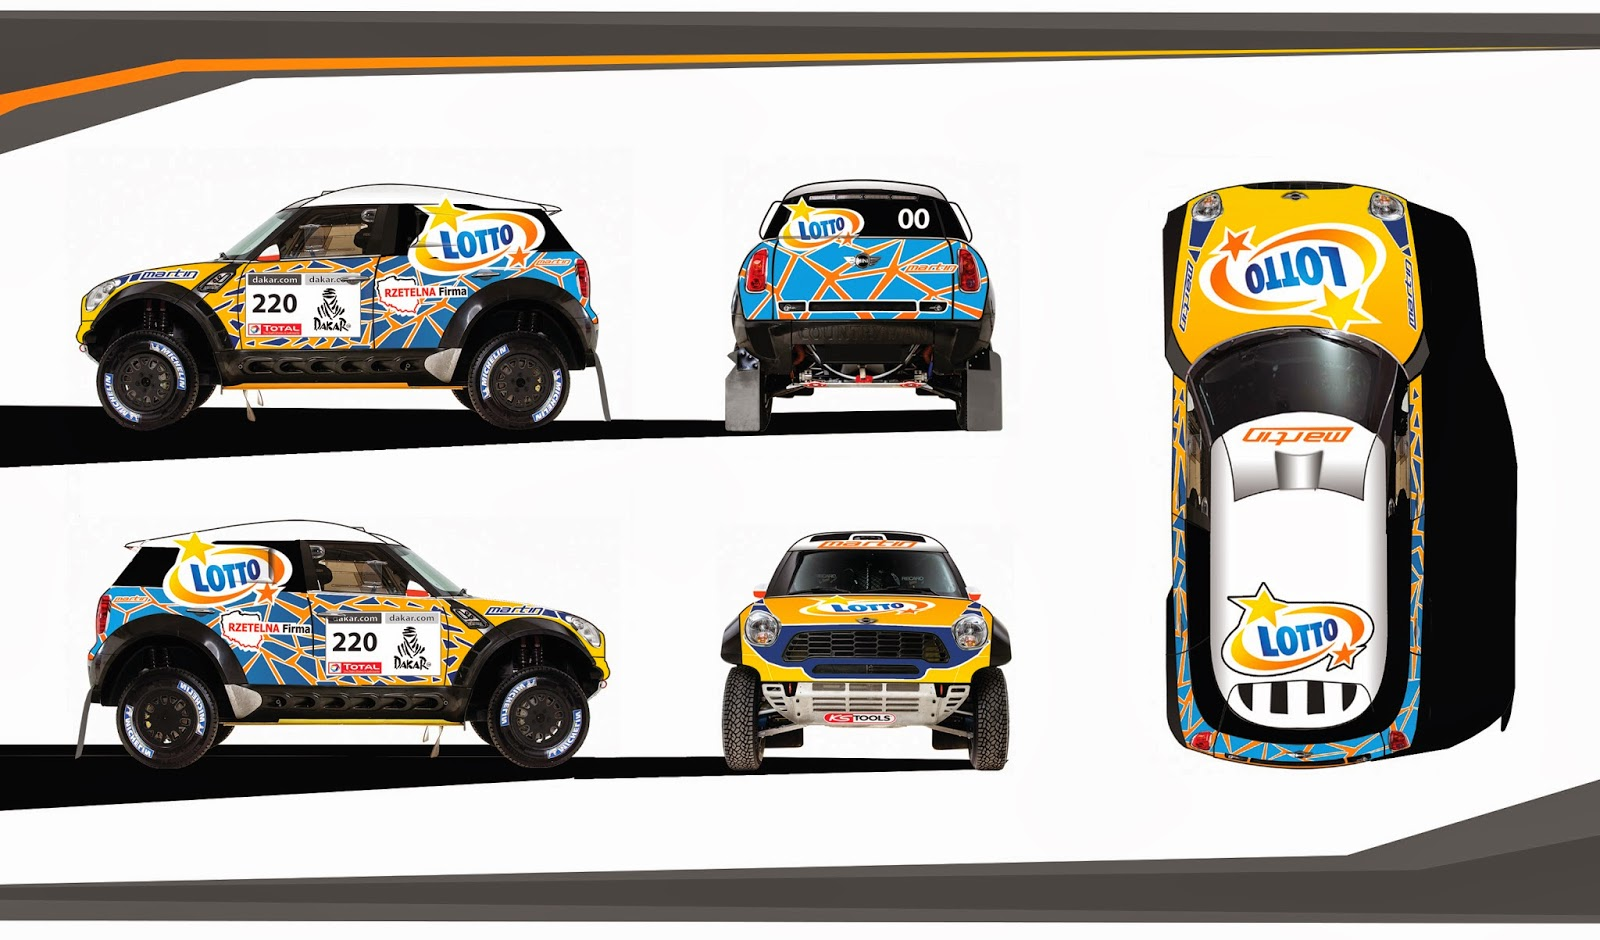 Cover project of dakar 2014 rally car and manitenance truck